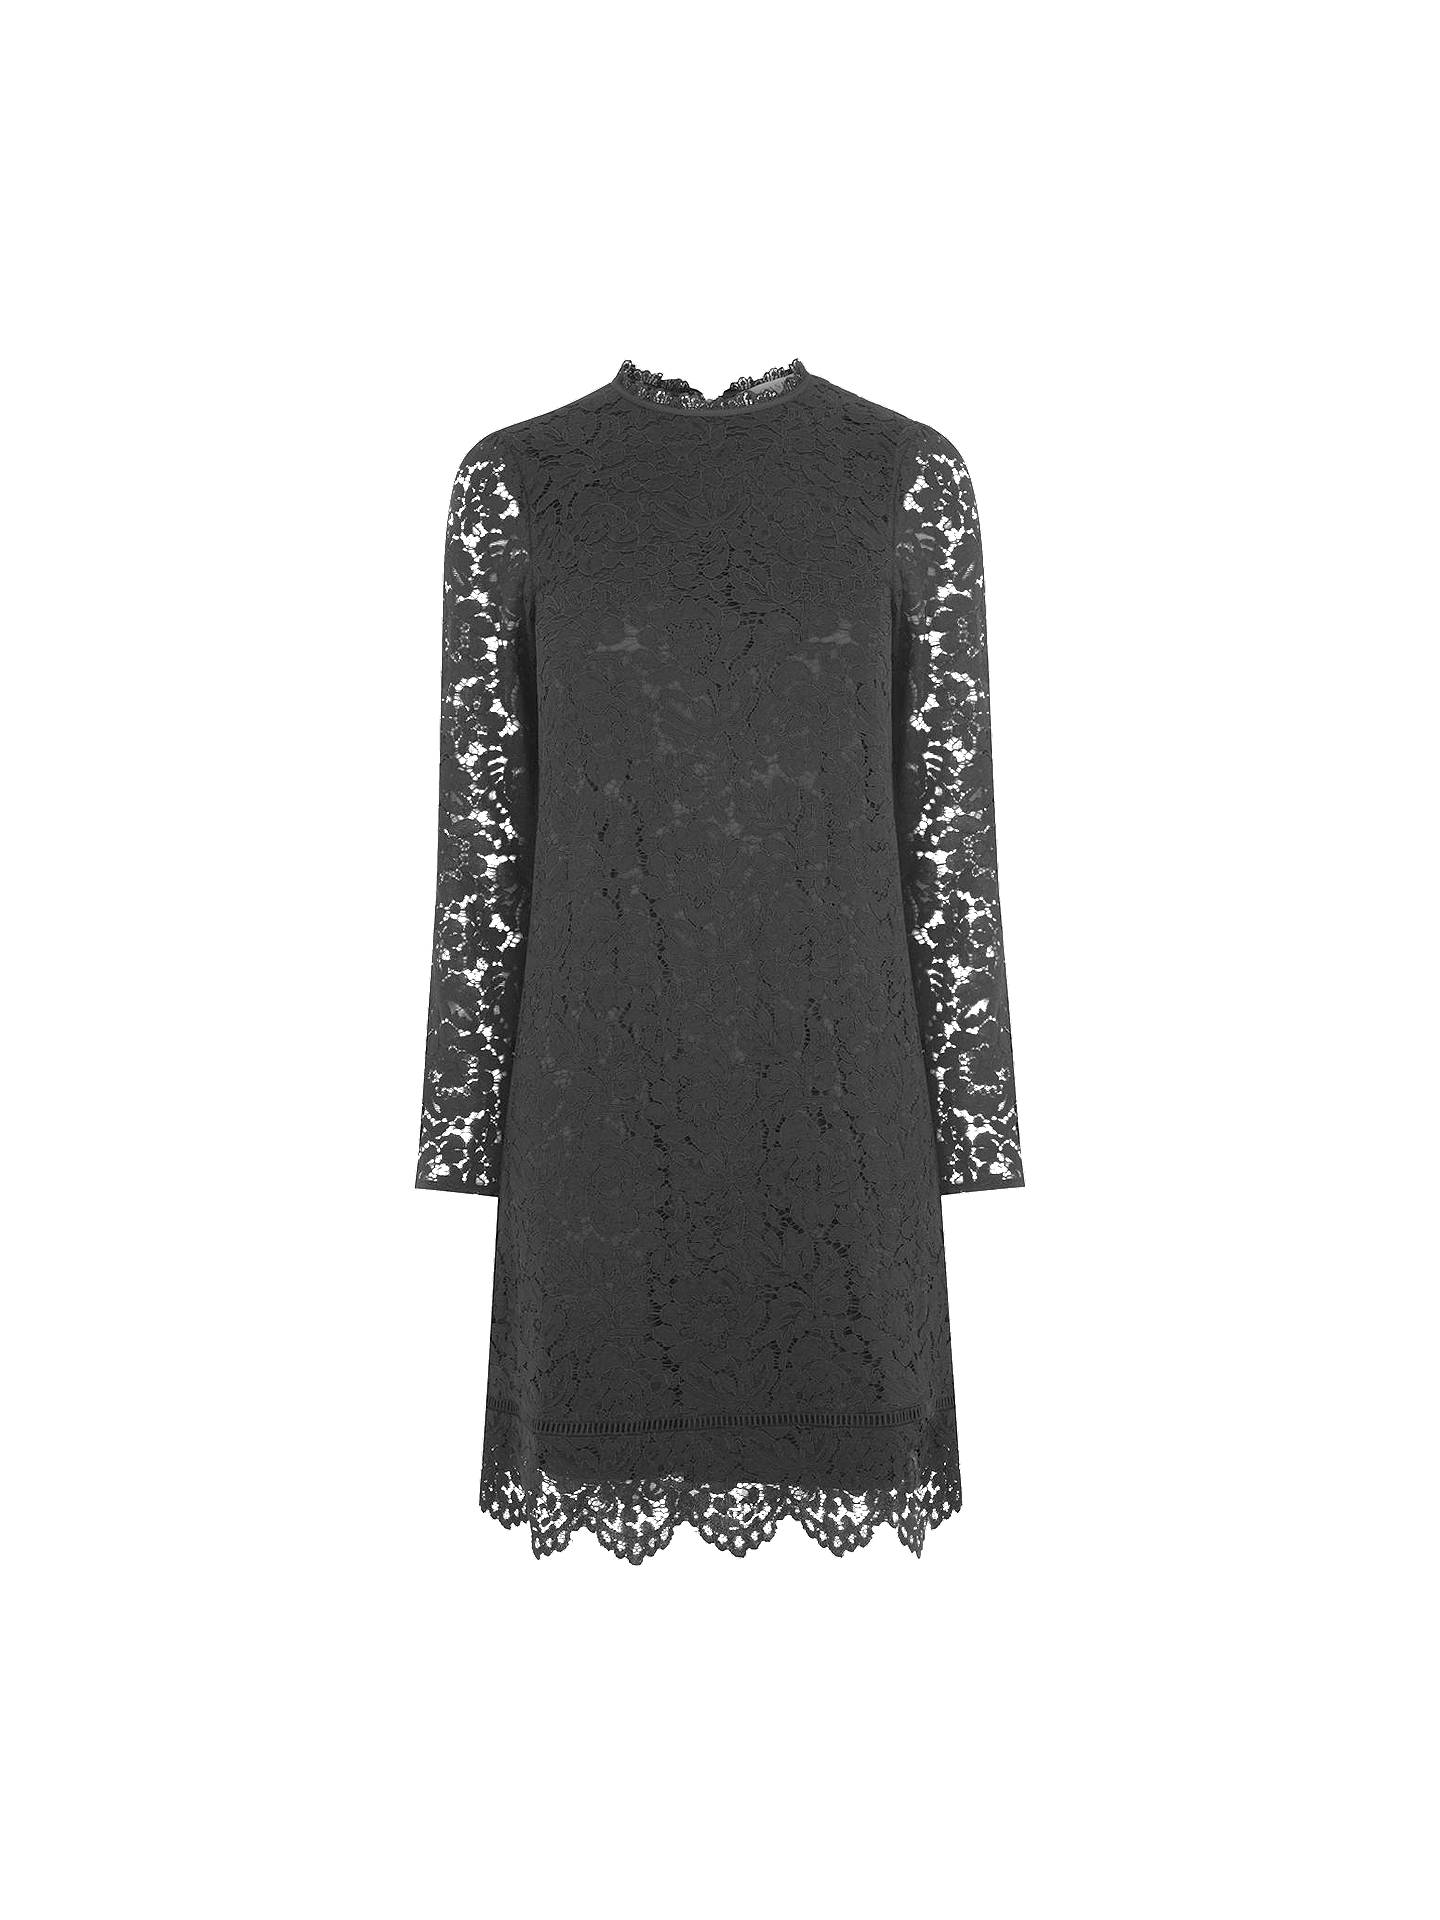 89e2c97c05fc Buy Oasis Puritan Scallop Lace Dress, Black, 8 Online at johnlewis.com ...